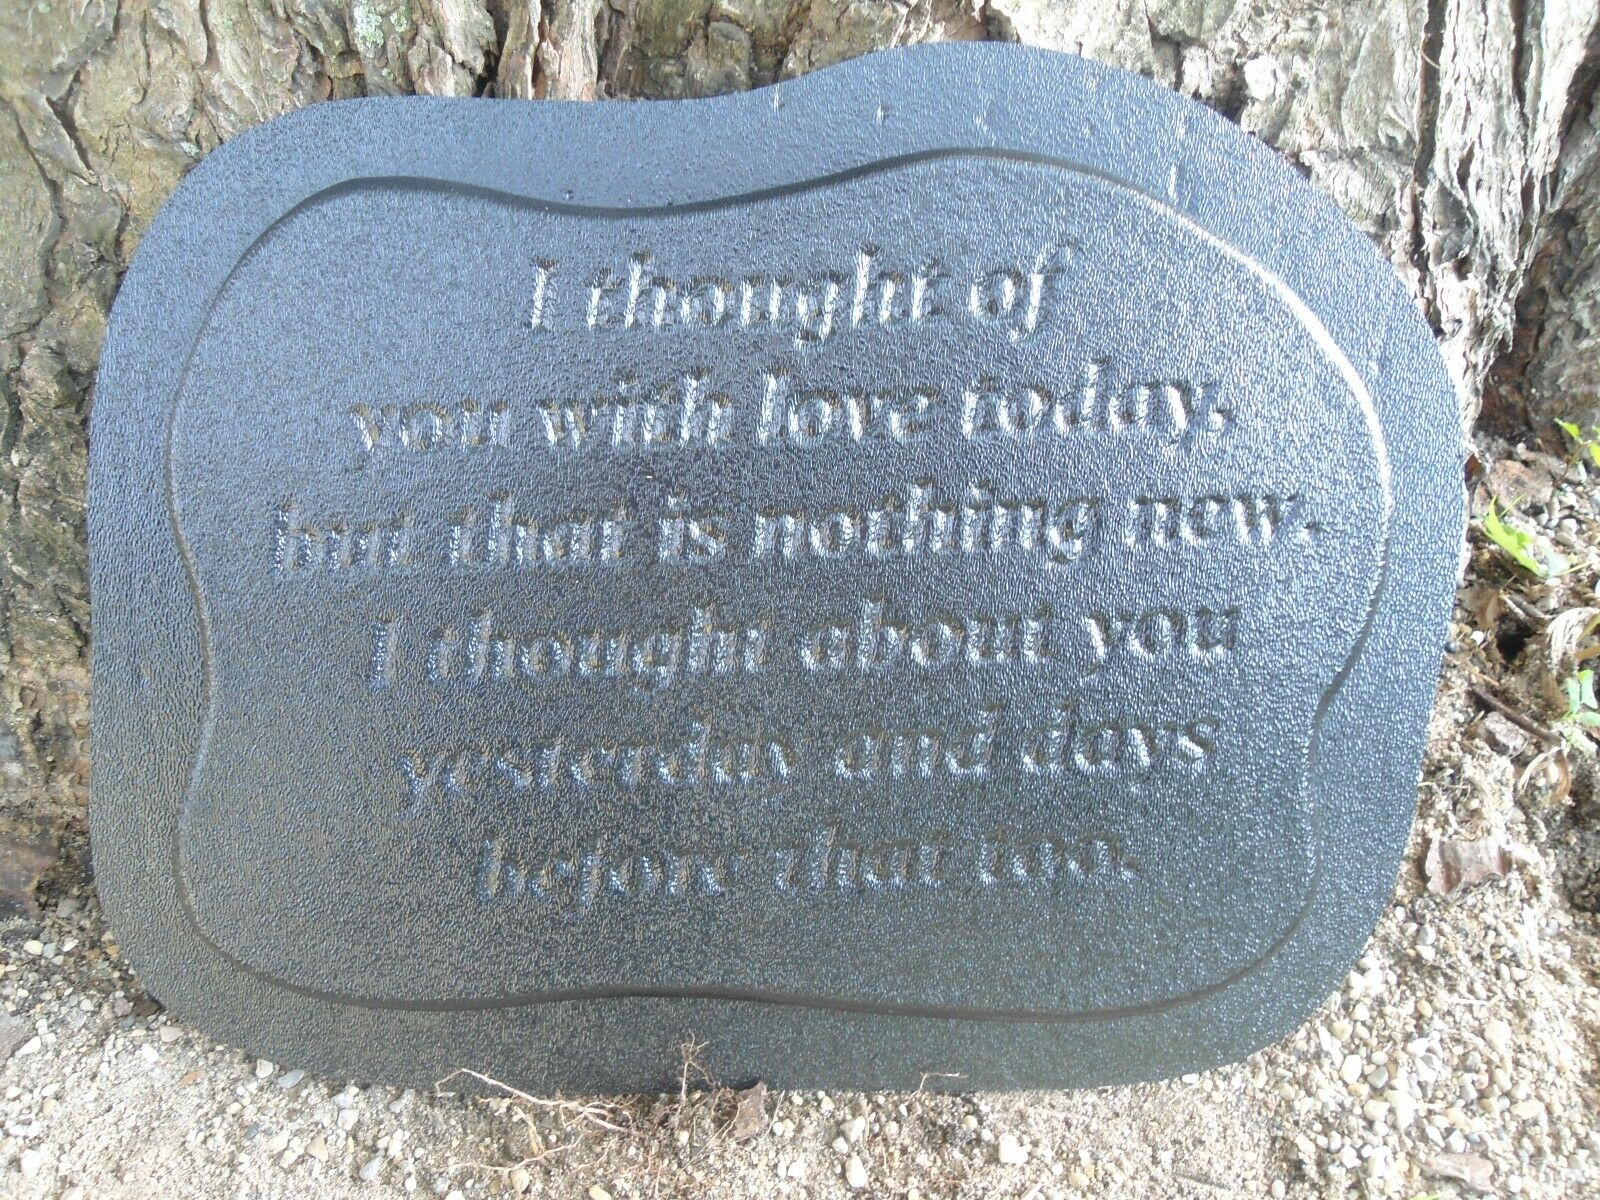 plastic memorial plaque 2 mold garden ornament stepping stone plaster concrete picclick uk. Black Bedroom Furniture Sets. Home Design Ideas